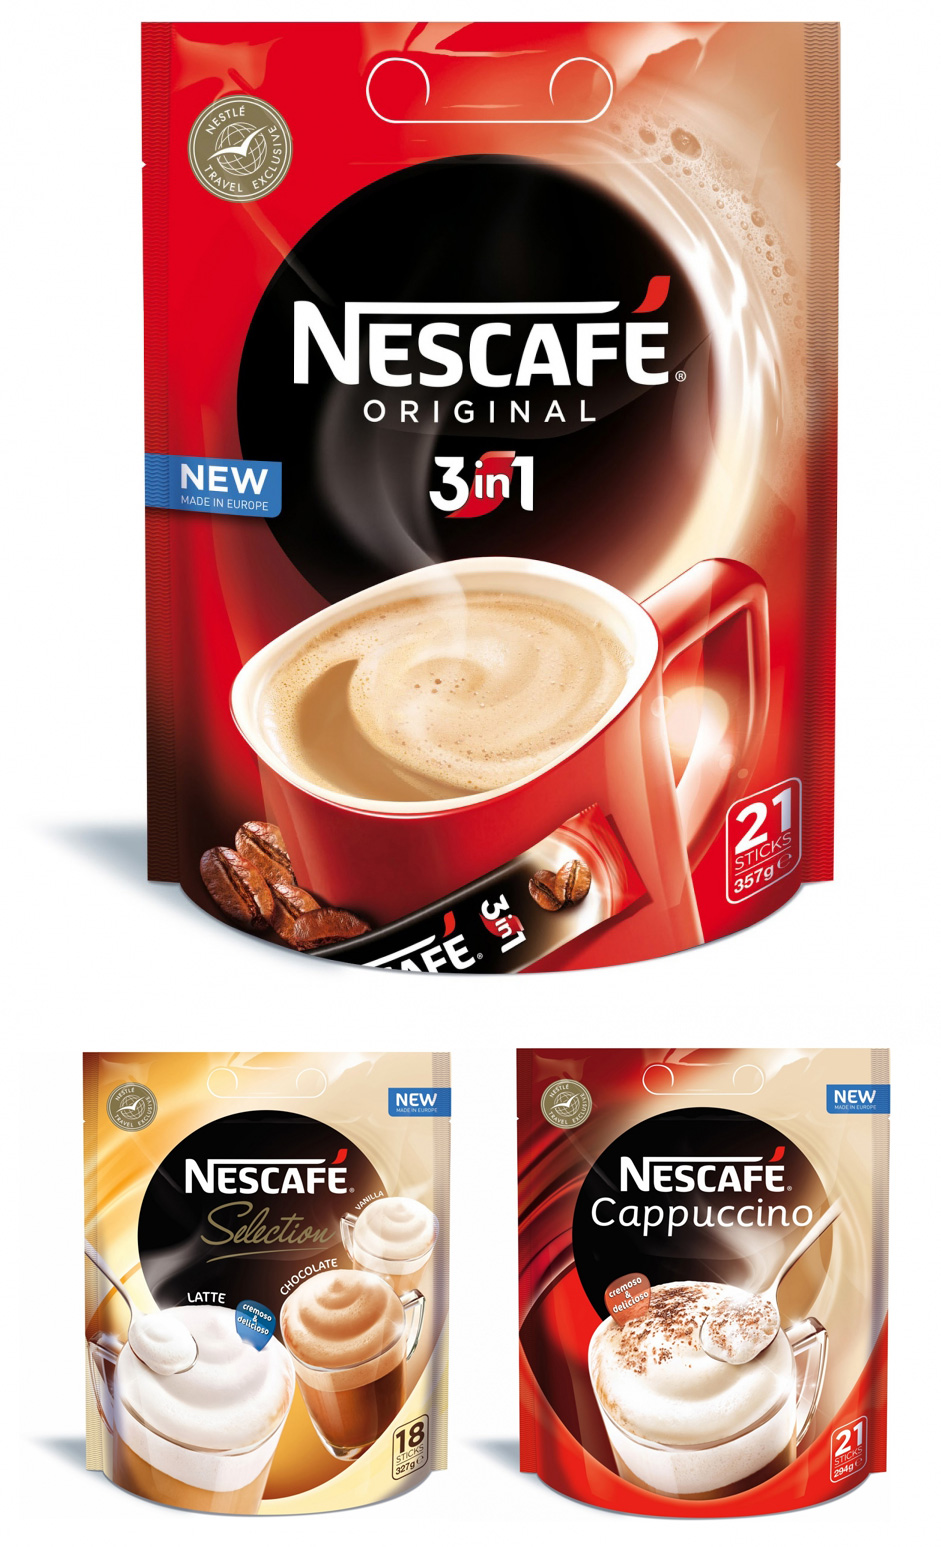 nescafe_packaging